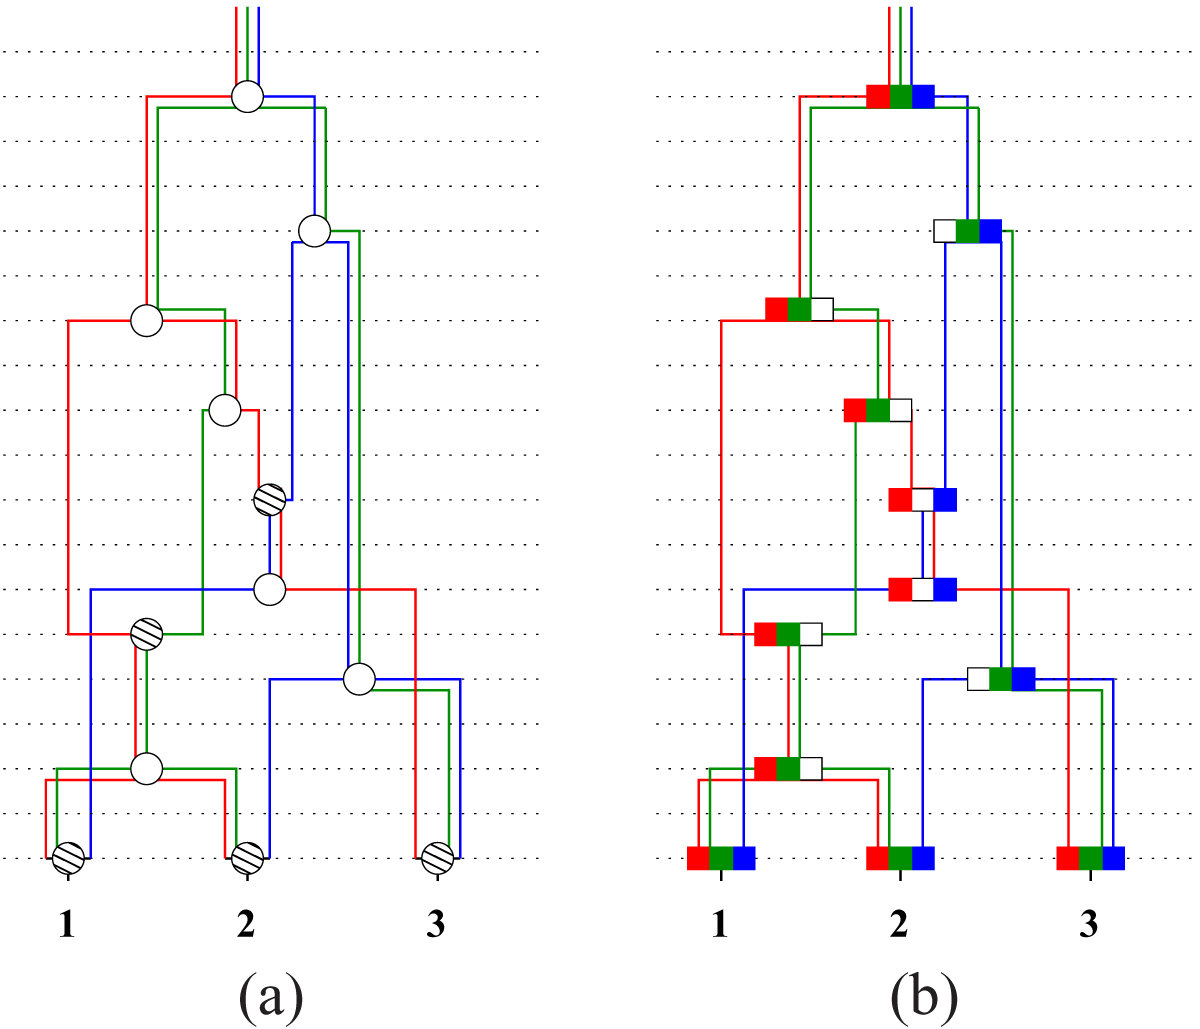 https://static-content.springer.com/image/art%3A10.1186%2F1471-2105-12-S1-S6/MediaObjects/12859_2011_Article_4364_Fig6_HTML.jpg